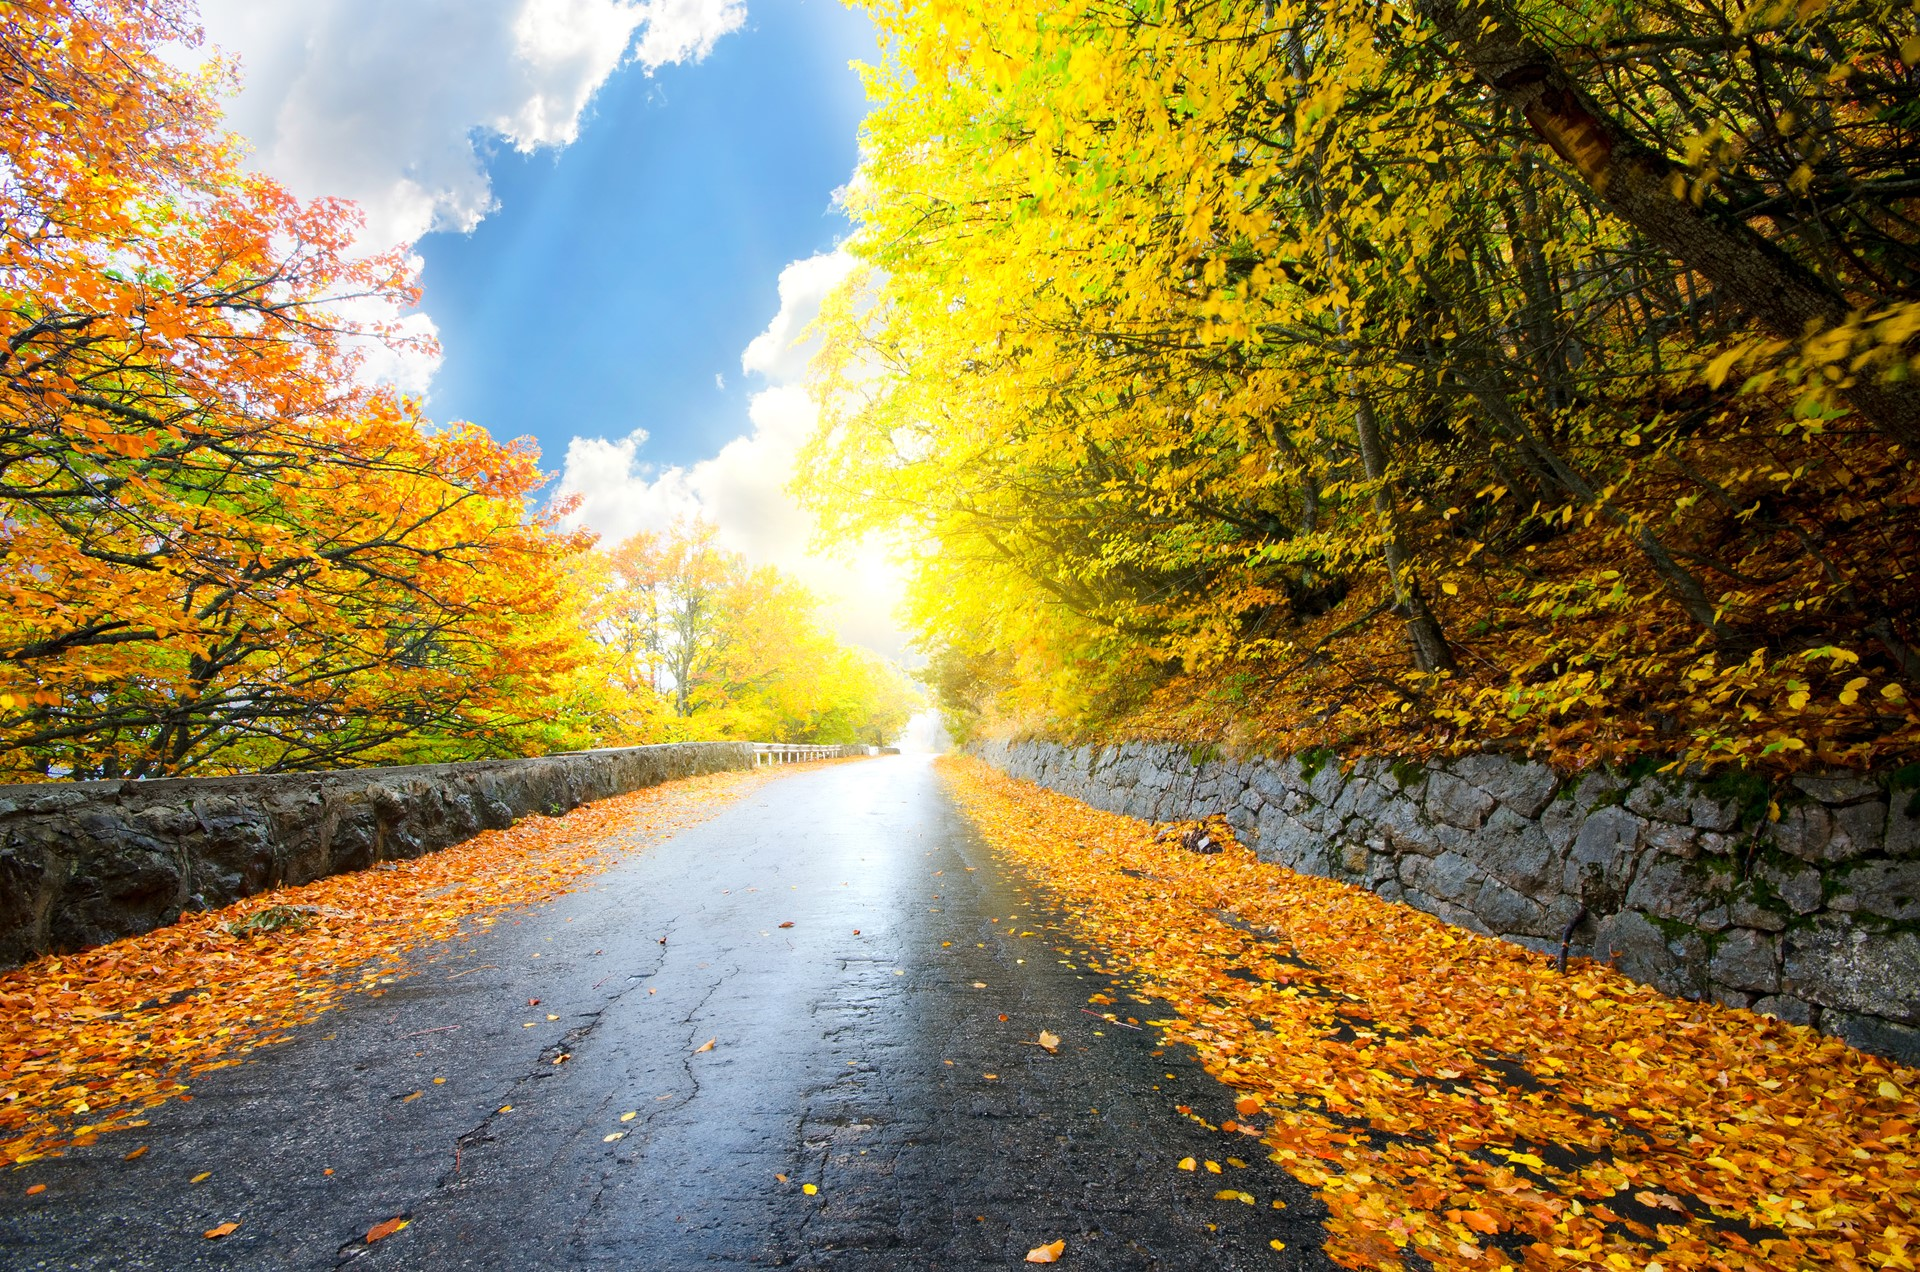 Forest road yellow tree with sun beautiful wallpaper for Desktop